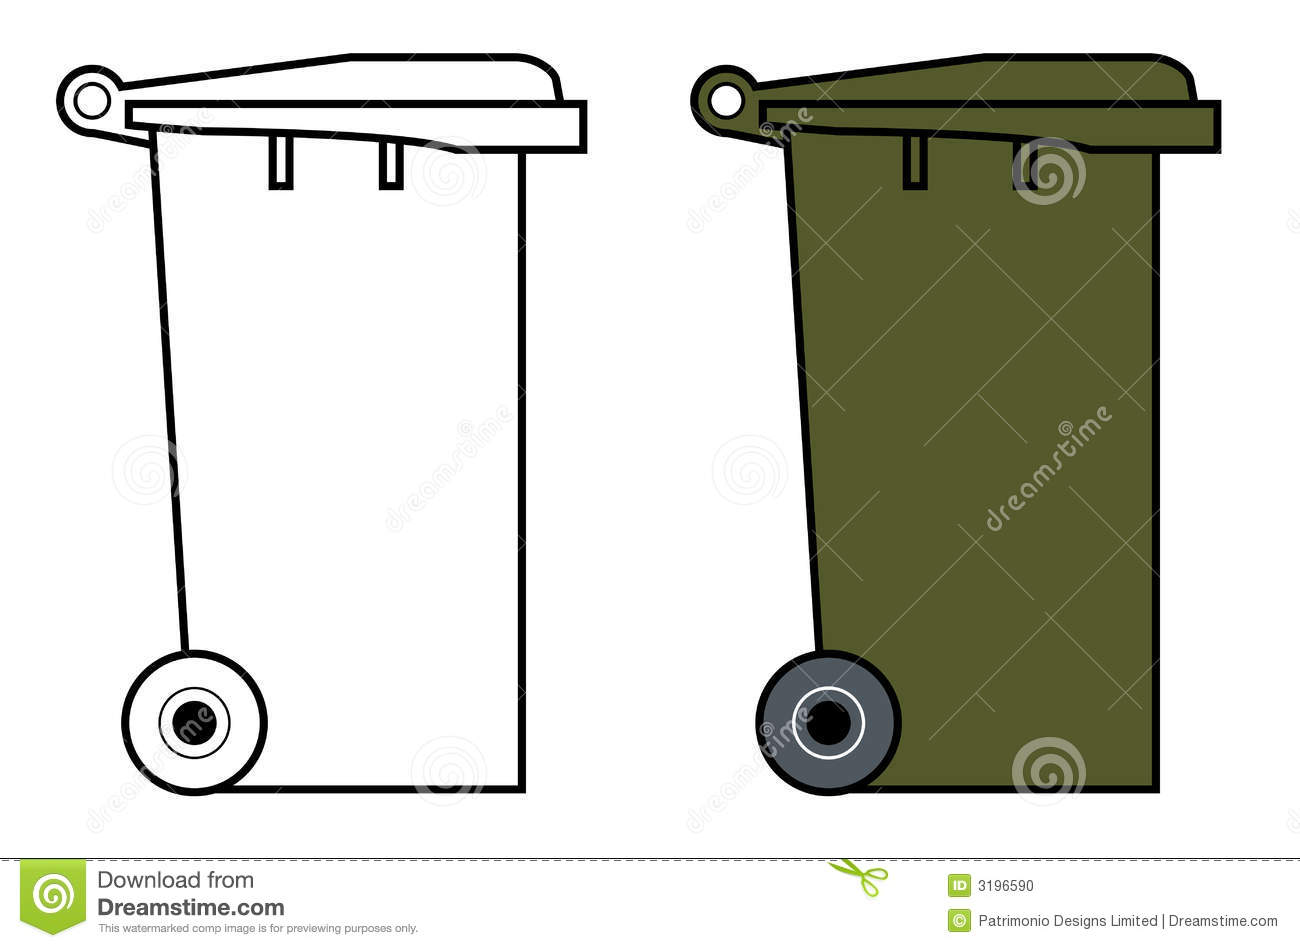 Recycle Bin Coloring Page. Garbage Dump Drawing | www.imgkid.com ...